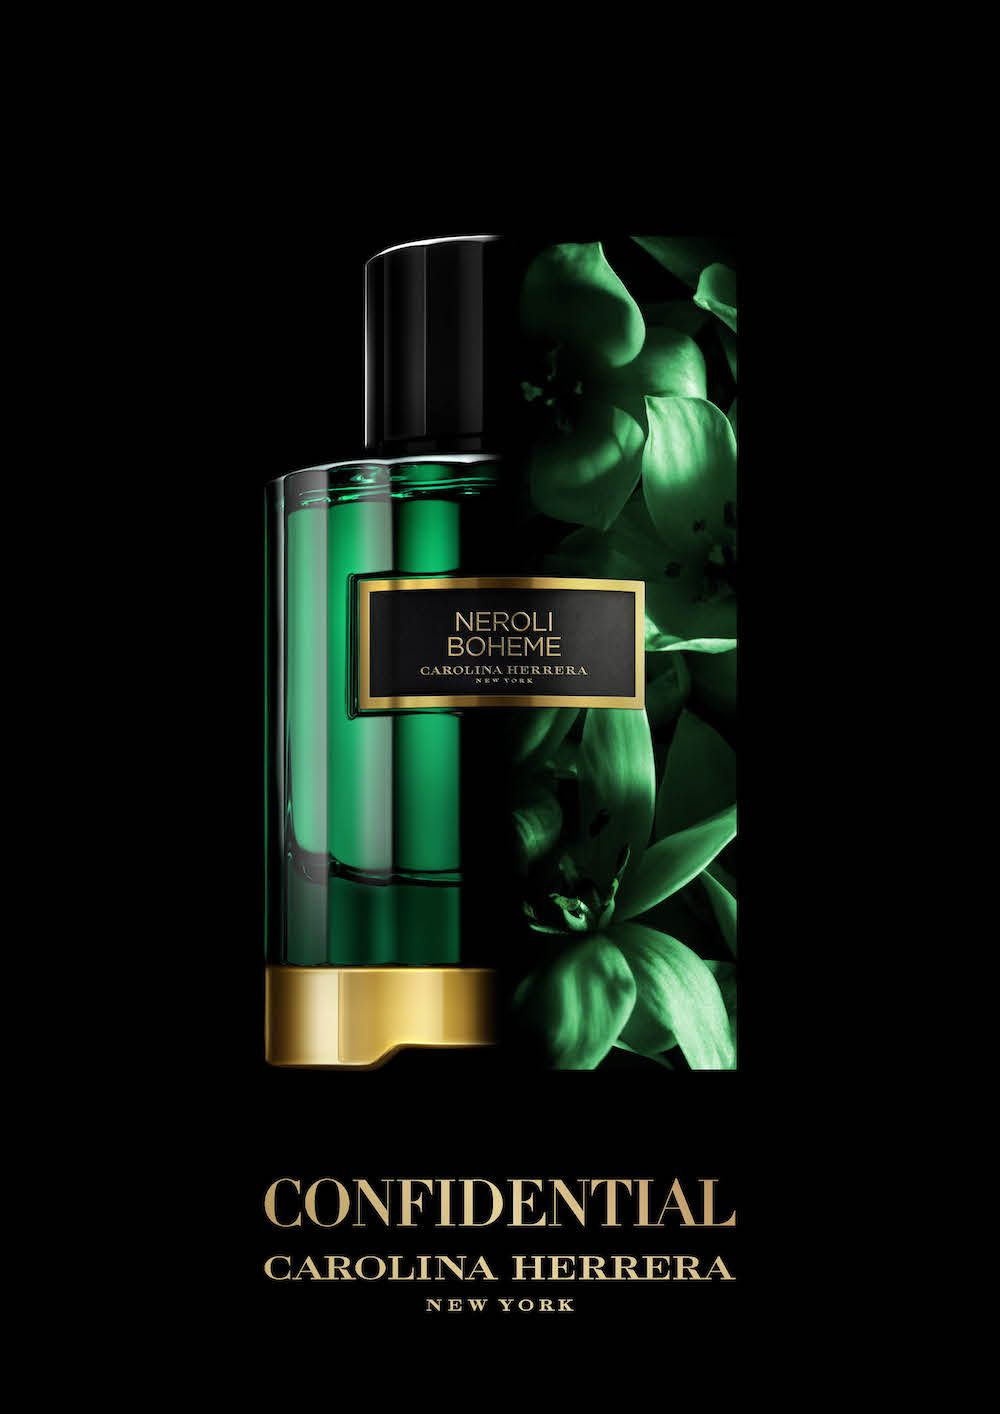 #HERRERACONFIDENTIAL: Neroli Boheme: Whimsical Spirit This passionate fragrance pays homage to whimsical and carefree days spent at carolina herrera's venezuelan family estate, le vega – a rich and verdant setting where elegance and relaxed style effortlessly harmonized. La vega played host to close friends and family from around the globe to enjoy lavish parties and intimate gatherings. The lush emerald gardens, vivid sunsets and breathtaking landscap created the backdrop to indelible…